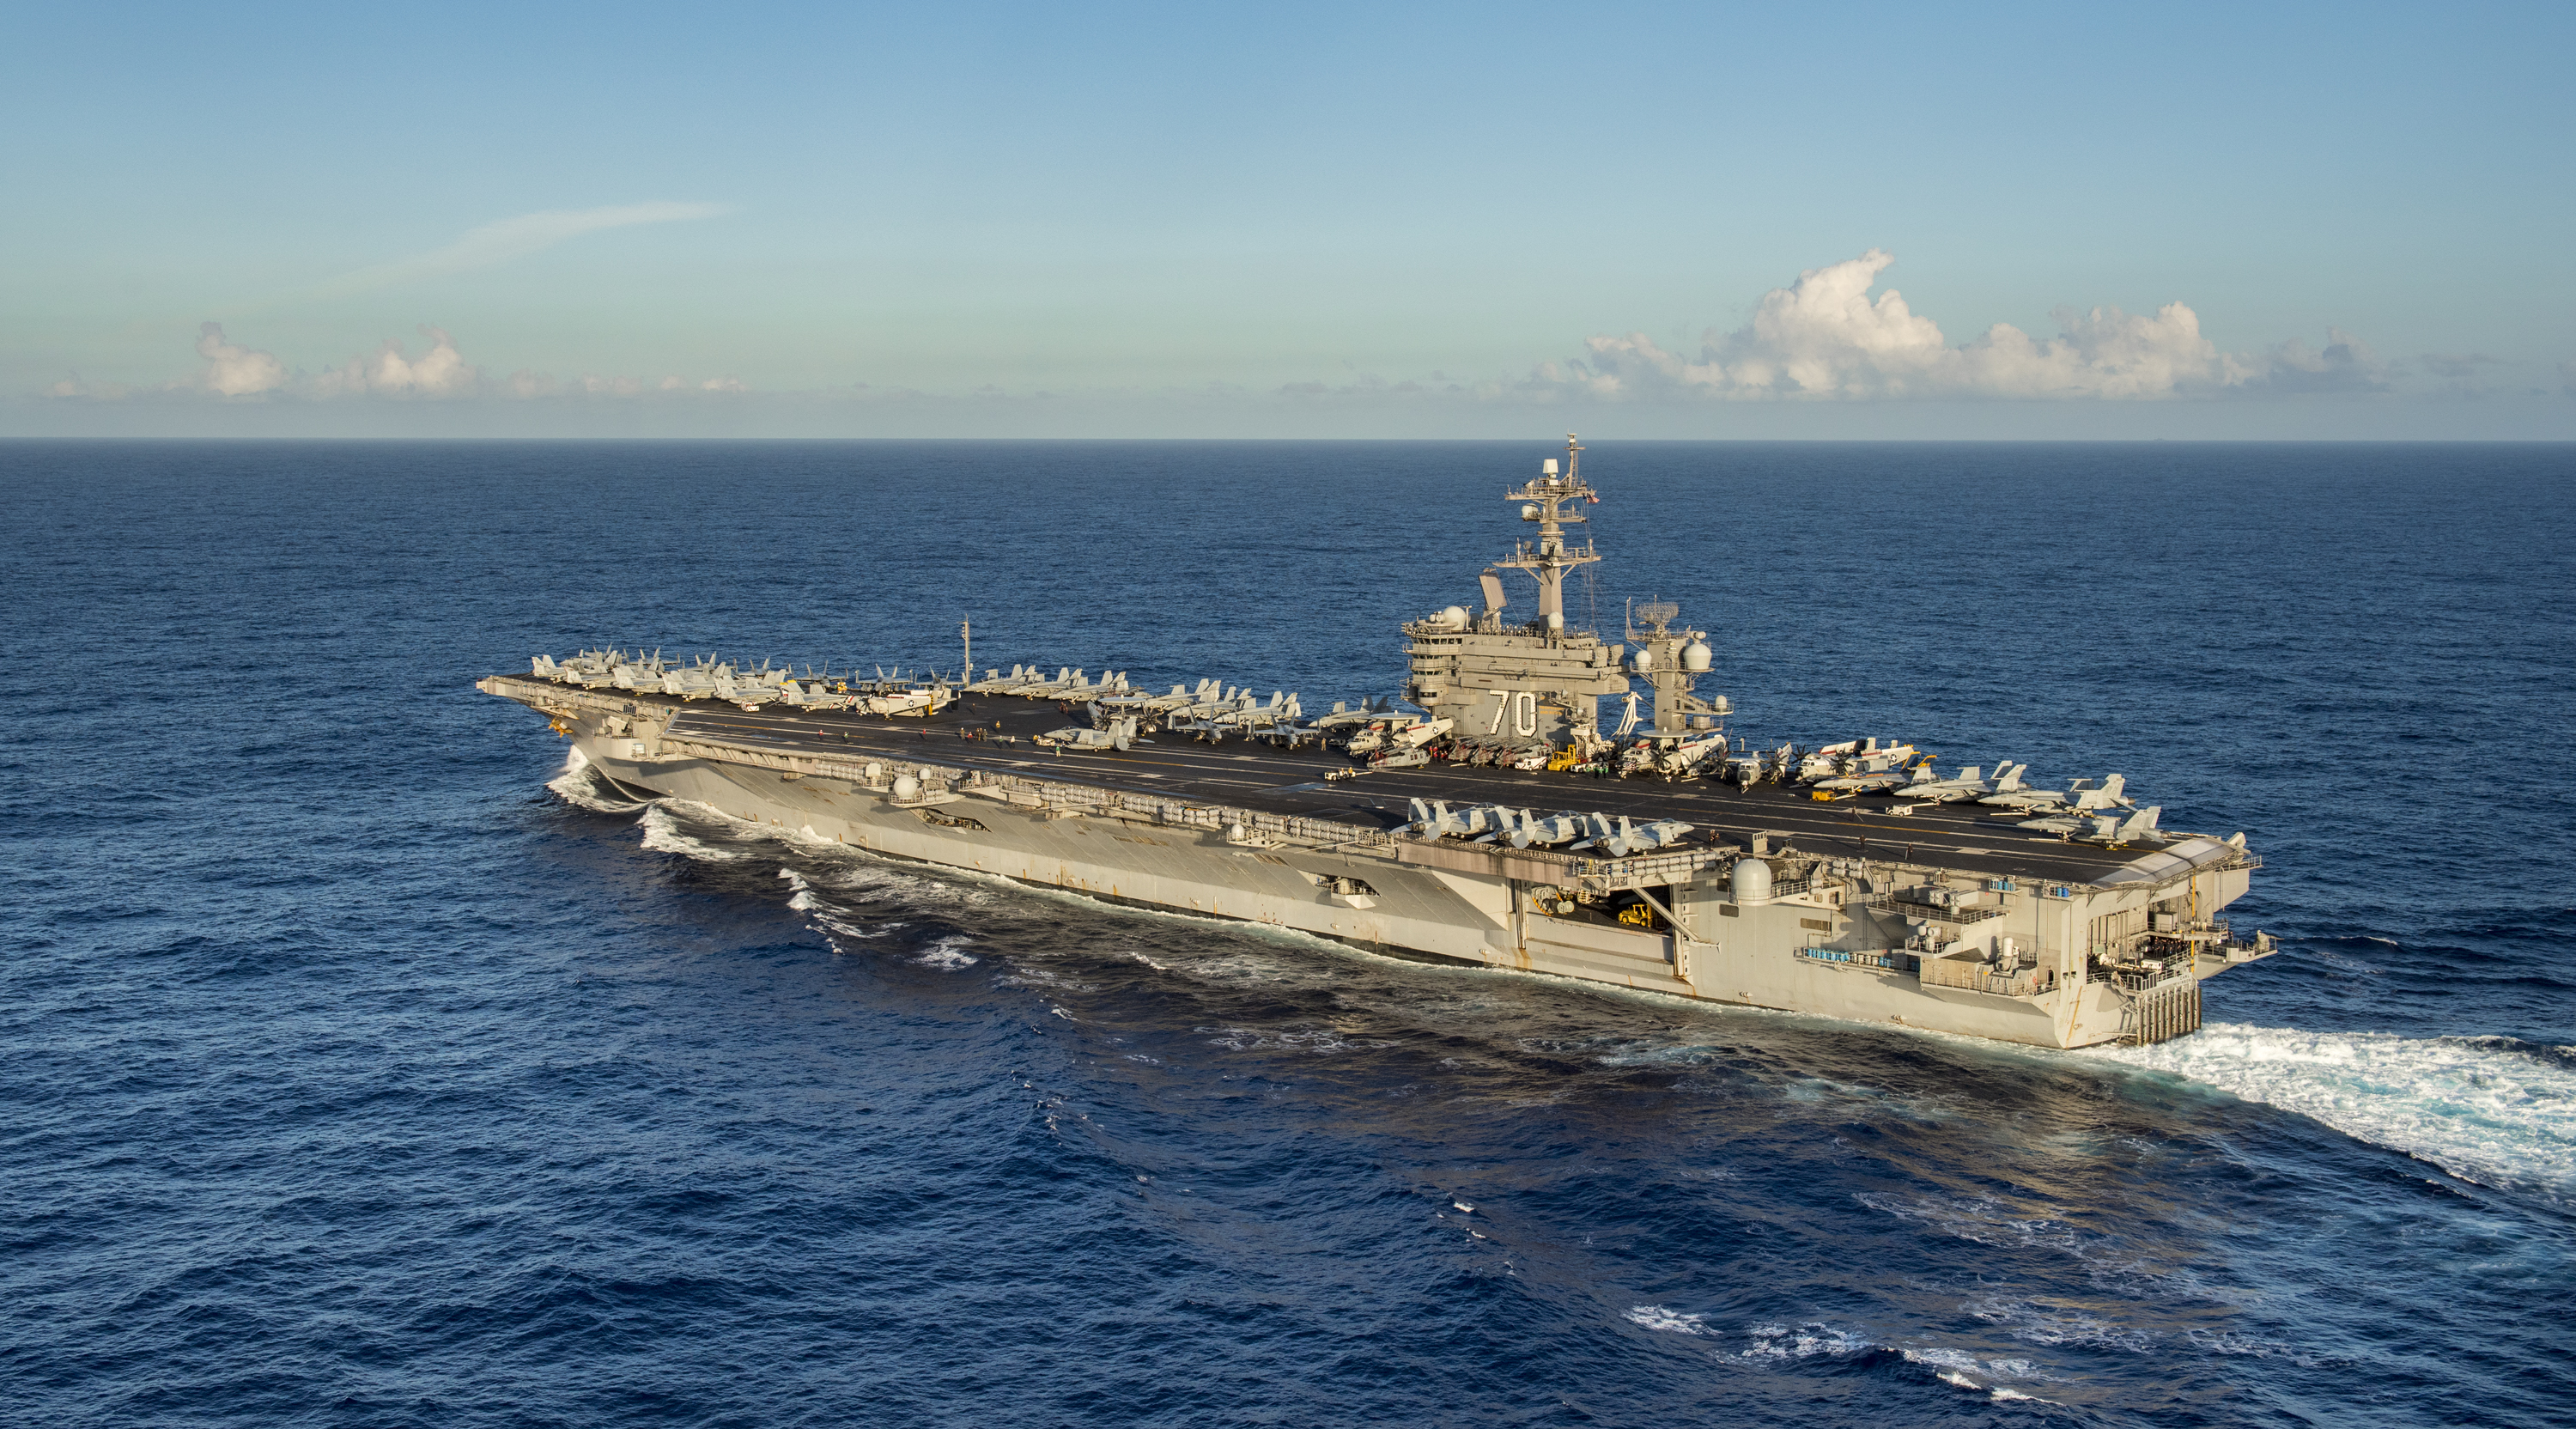 Nimitz-class aircraft carrier USS Carl Vinson transits the Pacific Ocean on Jan. 20, 2018.